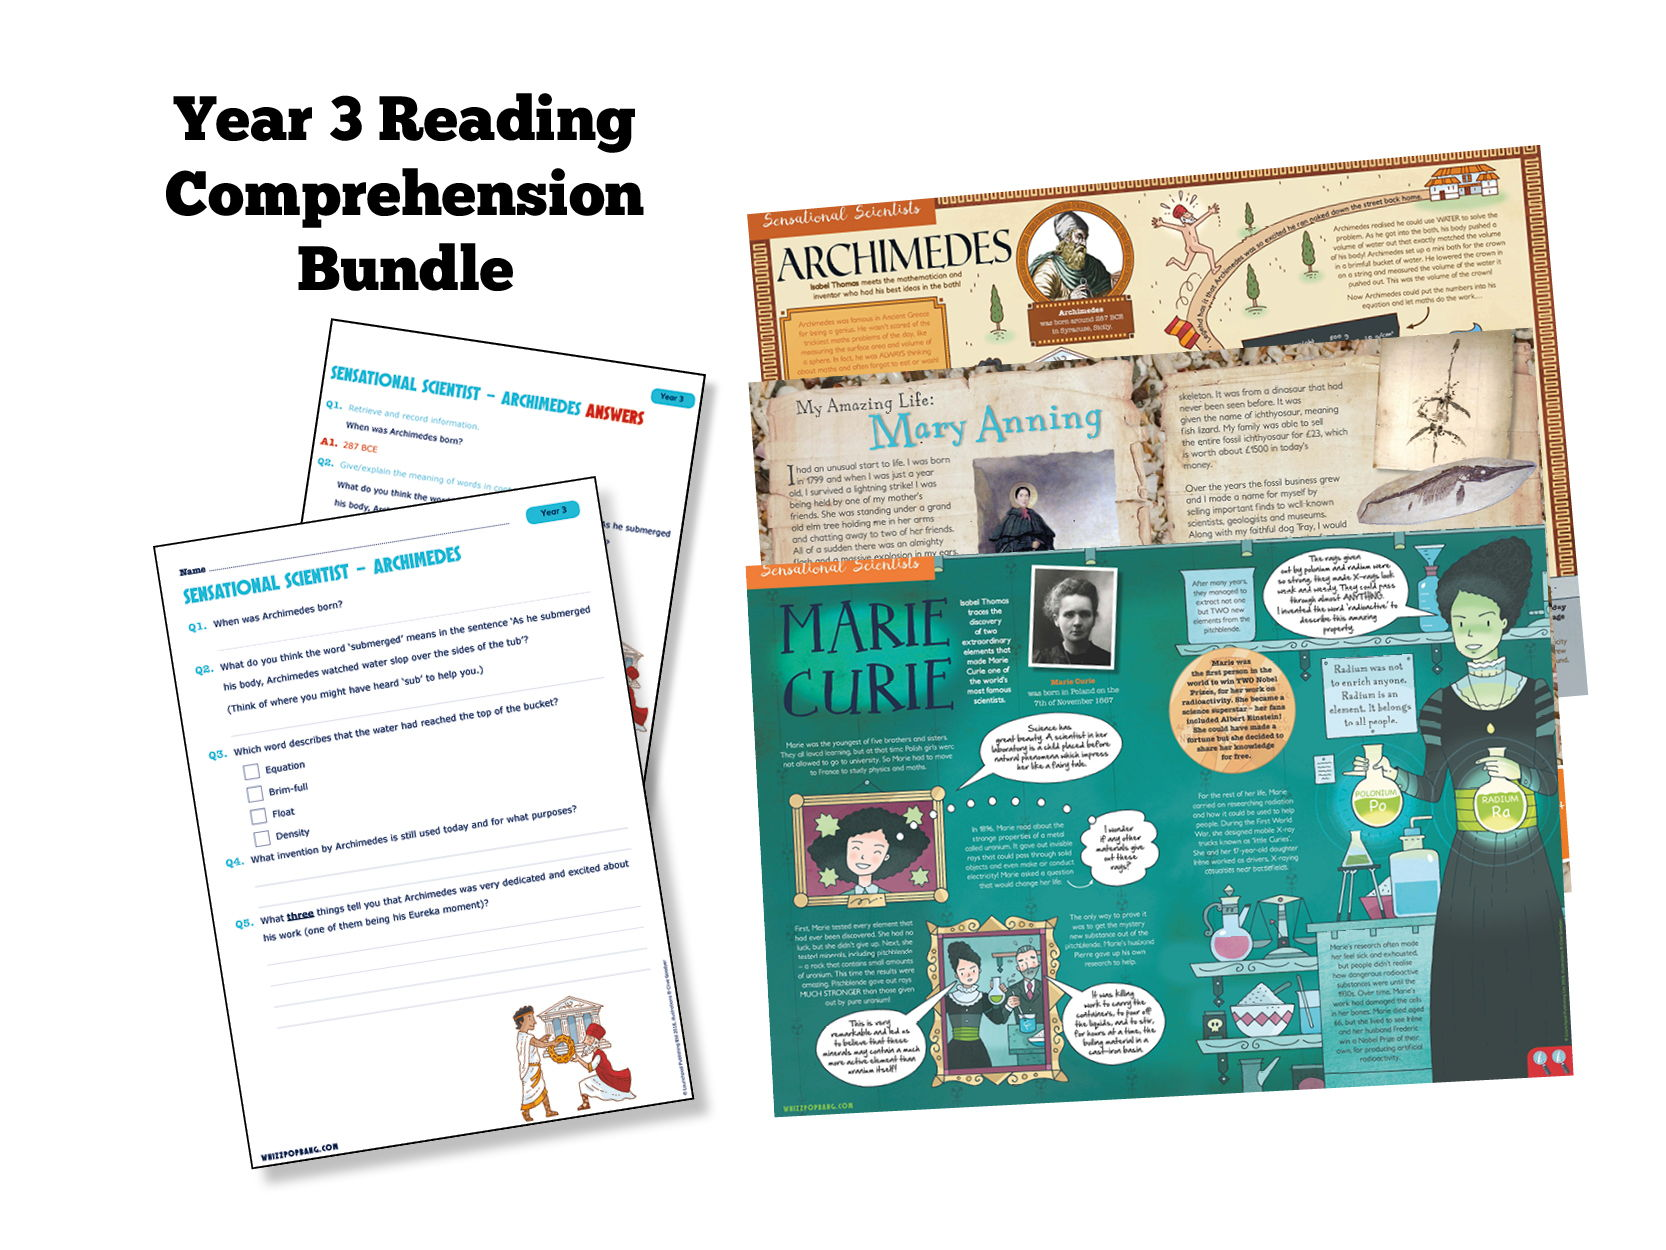 Year 3 Reading: Historical Scientists